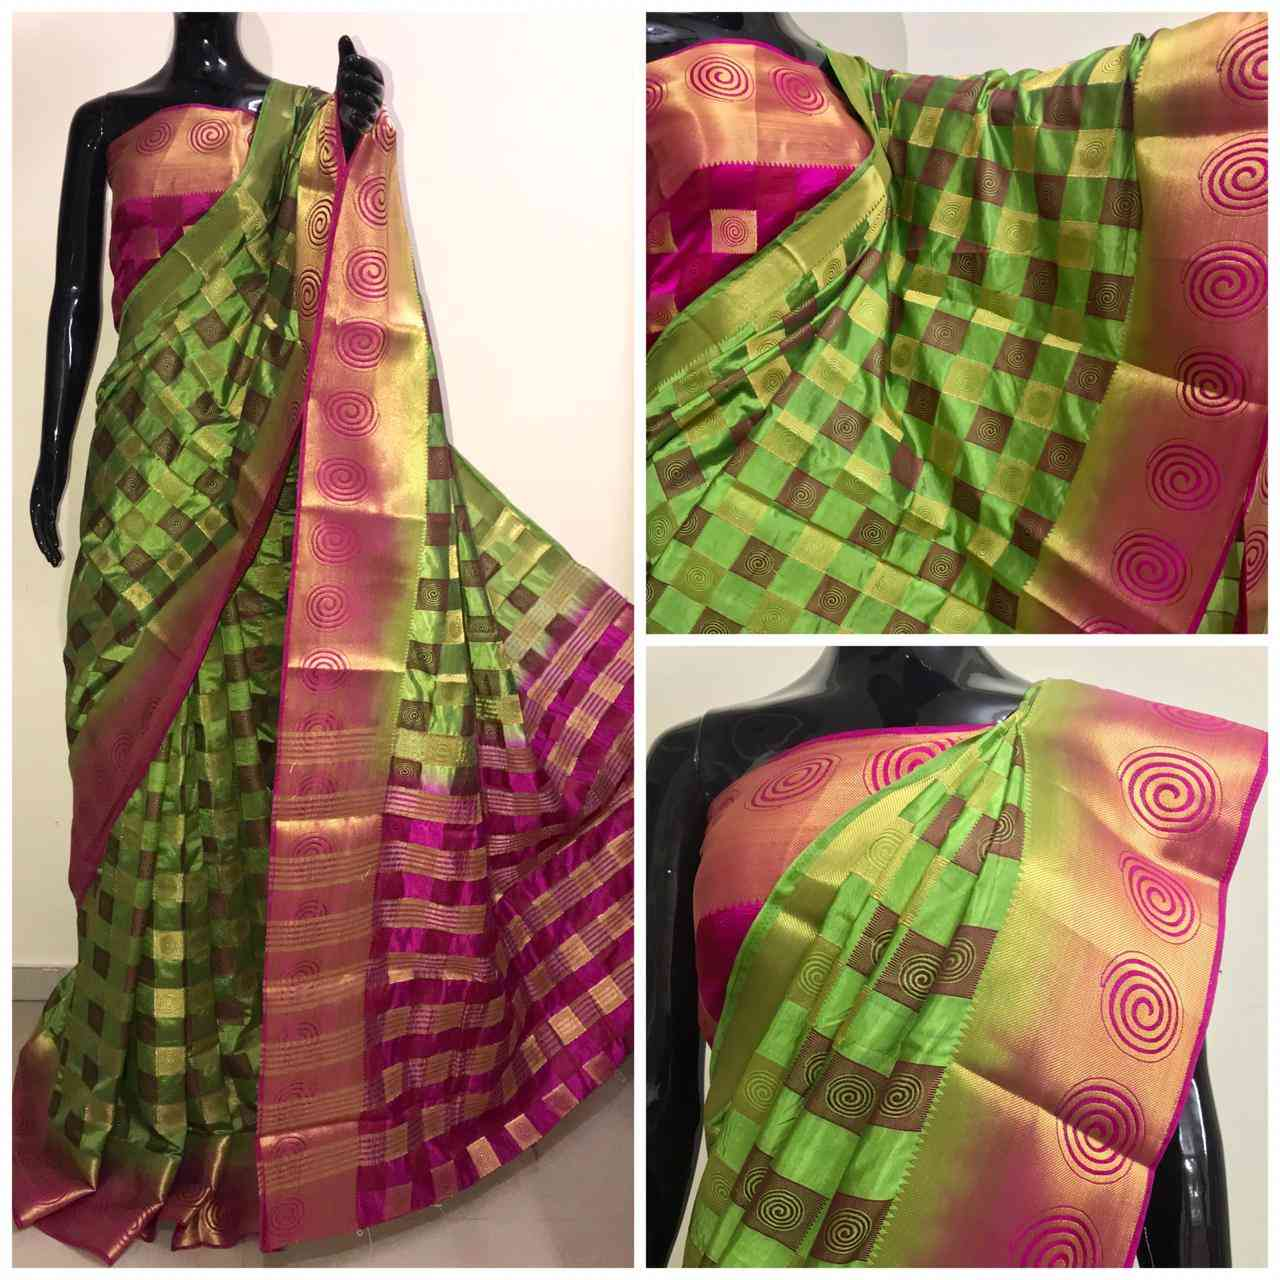 RS ZALEBI Kanjivaram Jacquard Border Sarees With Blouse